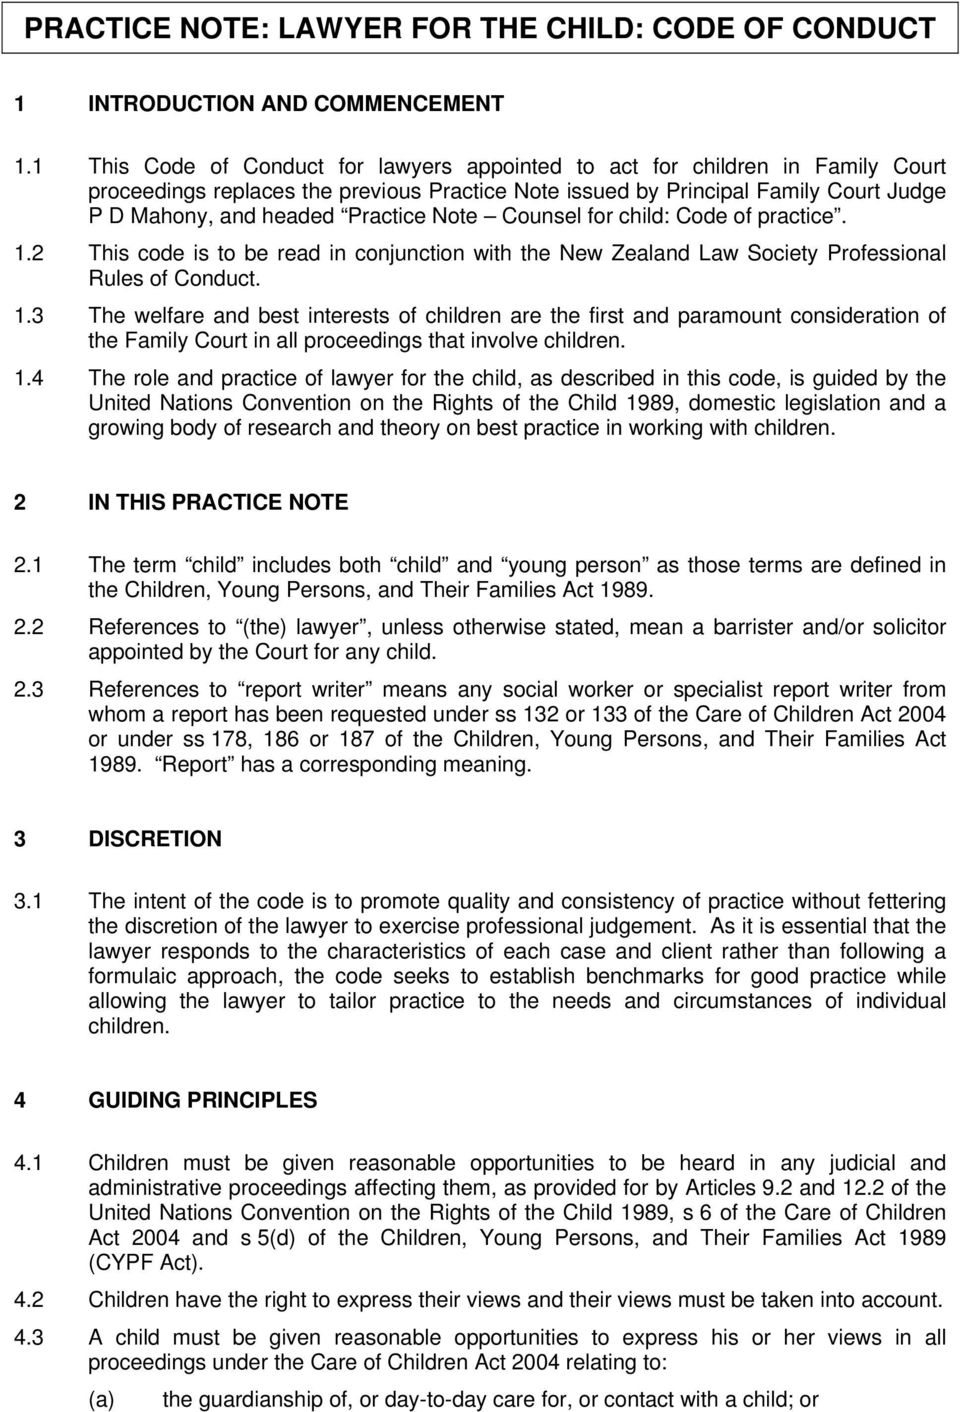 Note Counsel for child: Code of practice. 1.2 This code is to be read in conjunction with the New Zealand Law Society Professional Rules of Conduct. 1.3 The welfare and best interests of children are the first and paramount consideration of the Family Court in all proceedings that involve children.